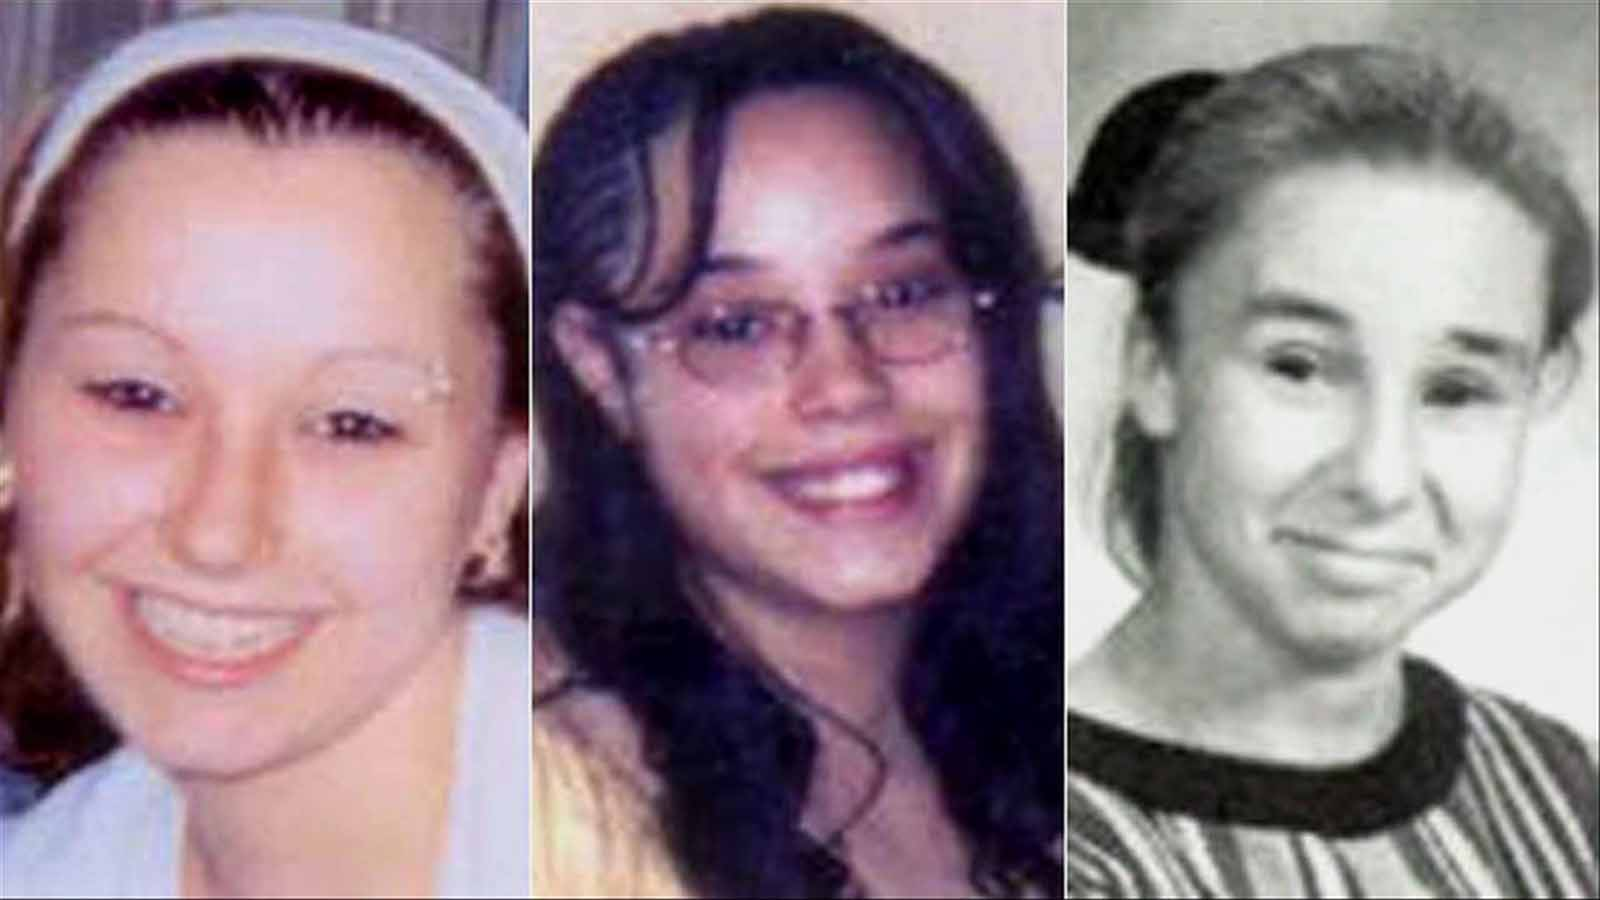 It's hard to imagine what would bring Ariel Castro to kidnap three Cleveland girls. But for a decade, the man kept these girls hidden from the world.